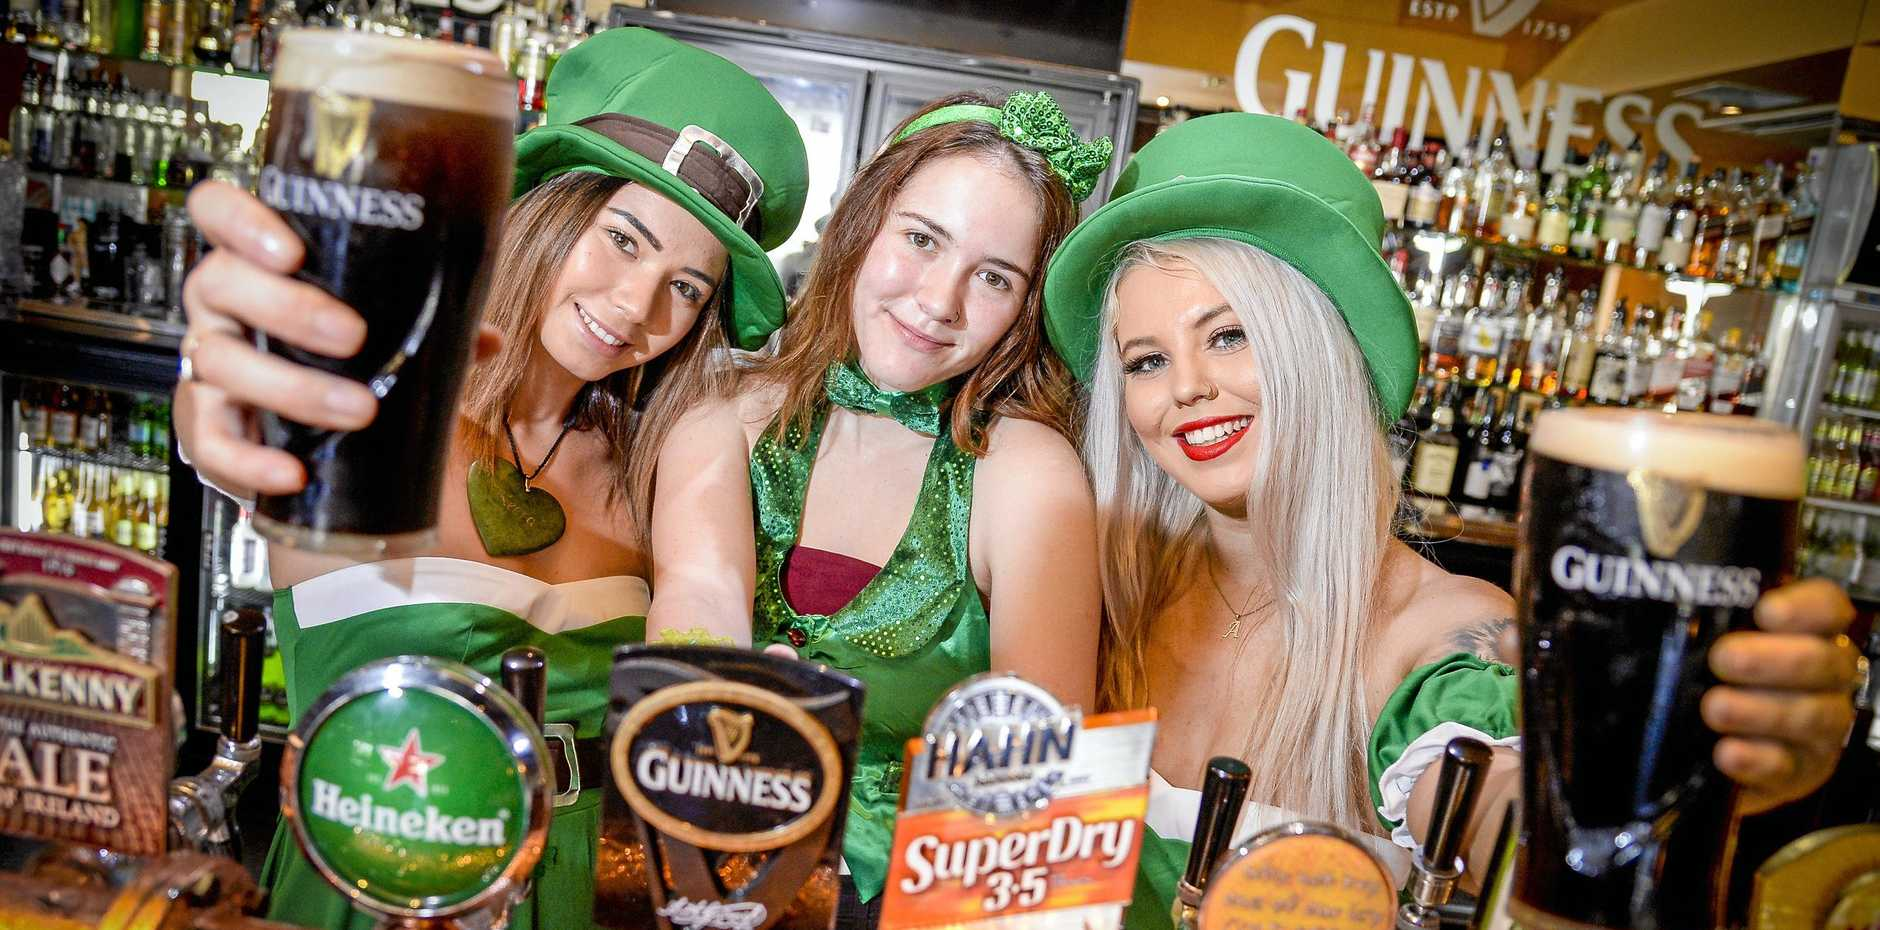 Shakeera Ututaonga, Kayla Hetherington and Amie Thompson from Dicey's Gladstone are looking forward to a weekend of celebrations for St Patrick's Day.